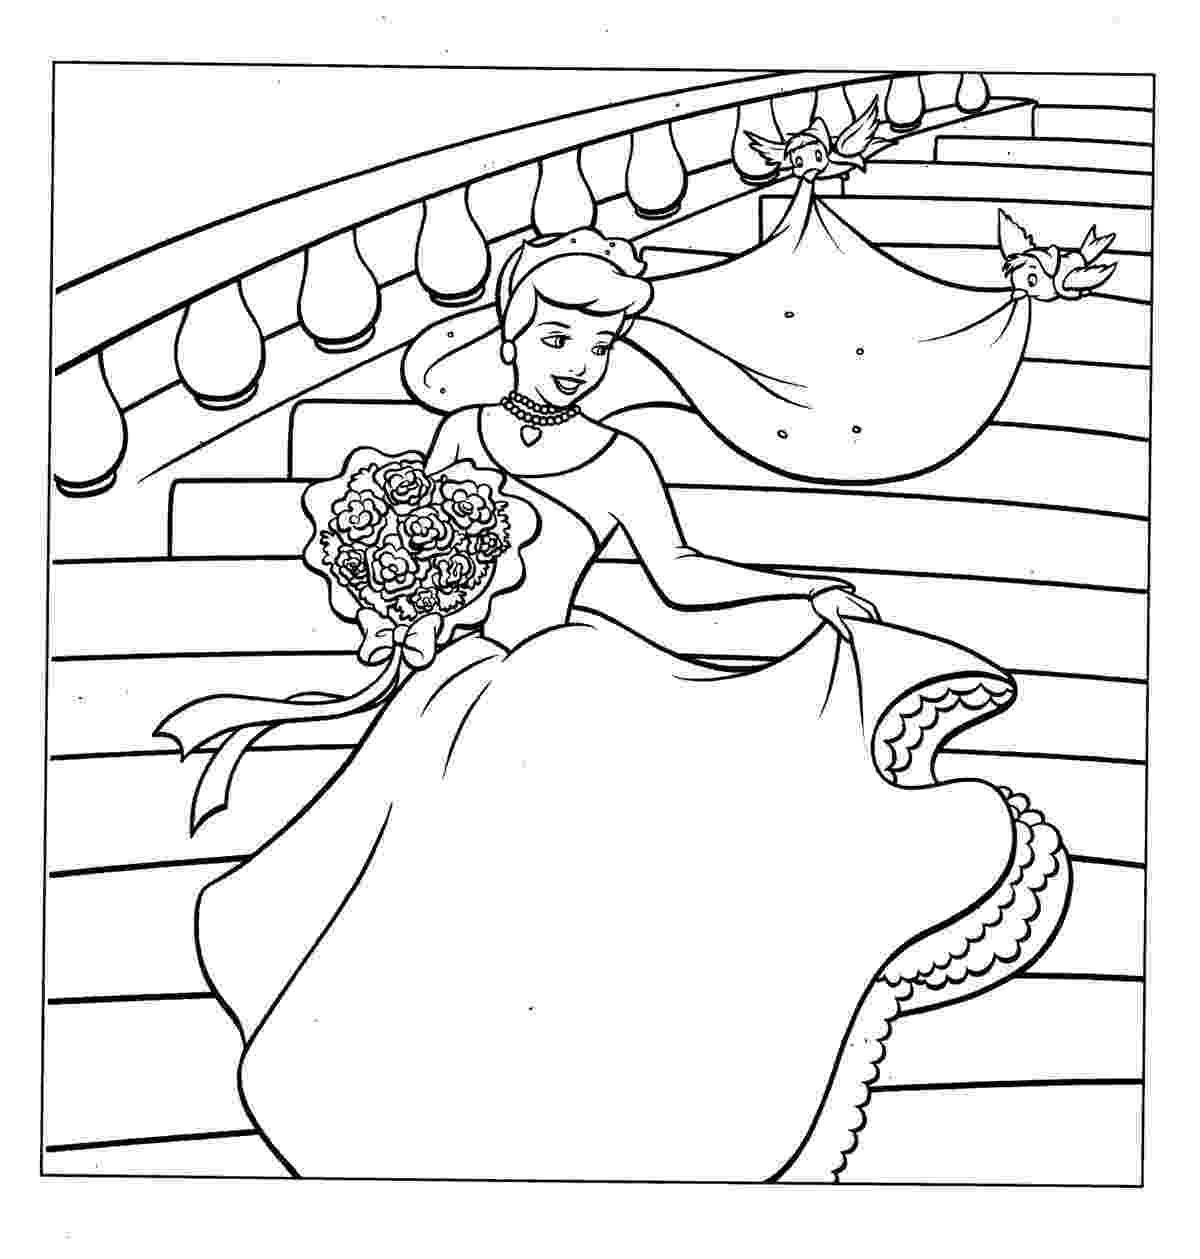 cinderella coloring pages free free printable cinderella activity sheets and coloring coloring cinderella free pages